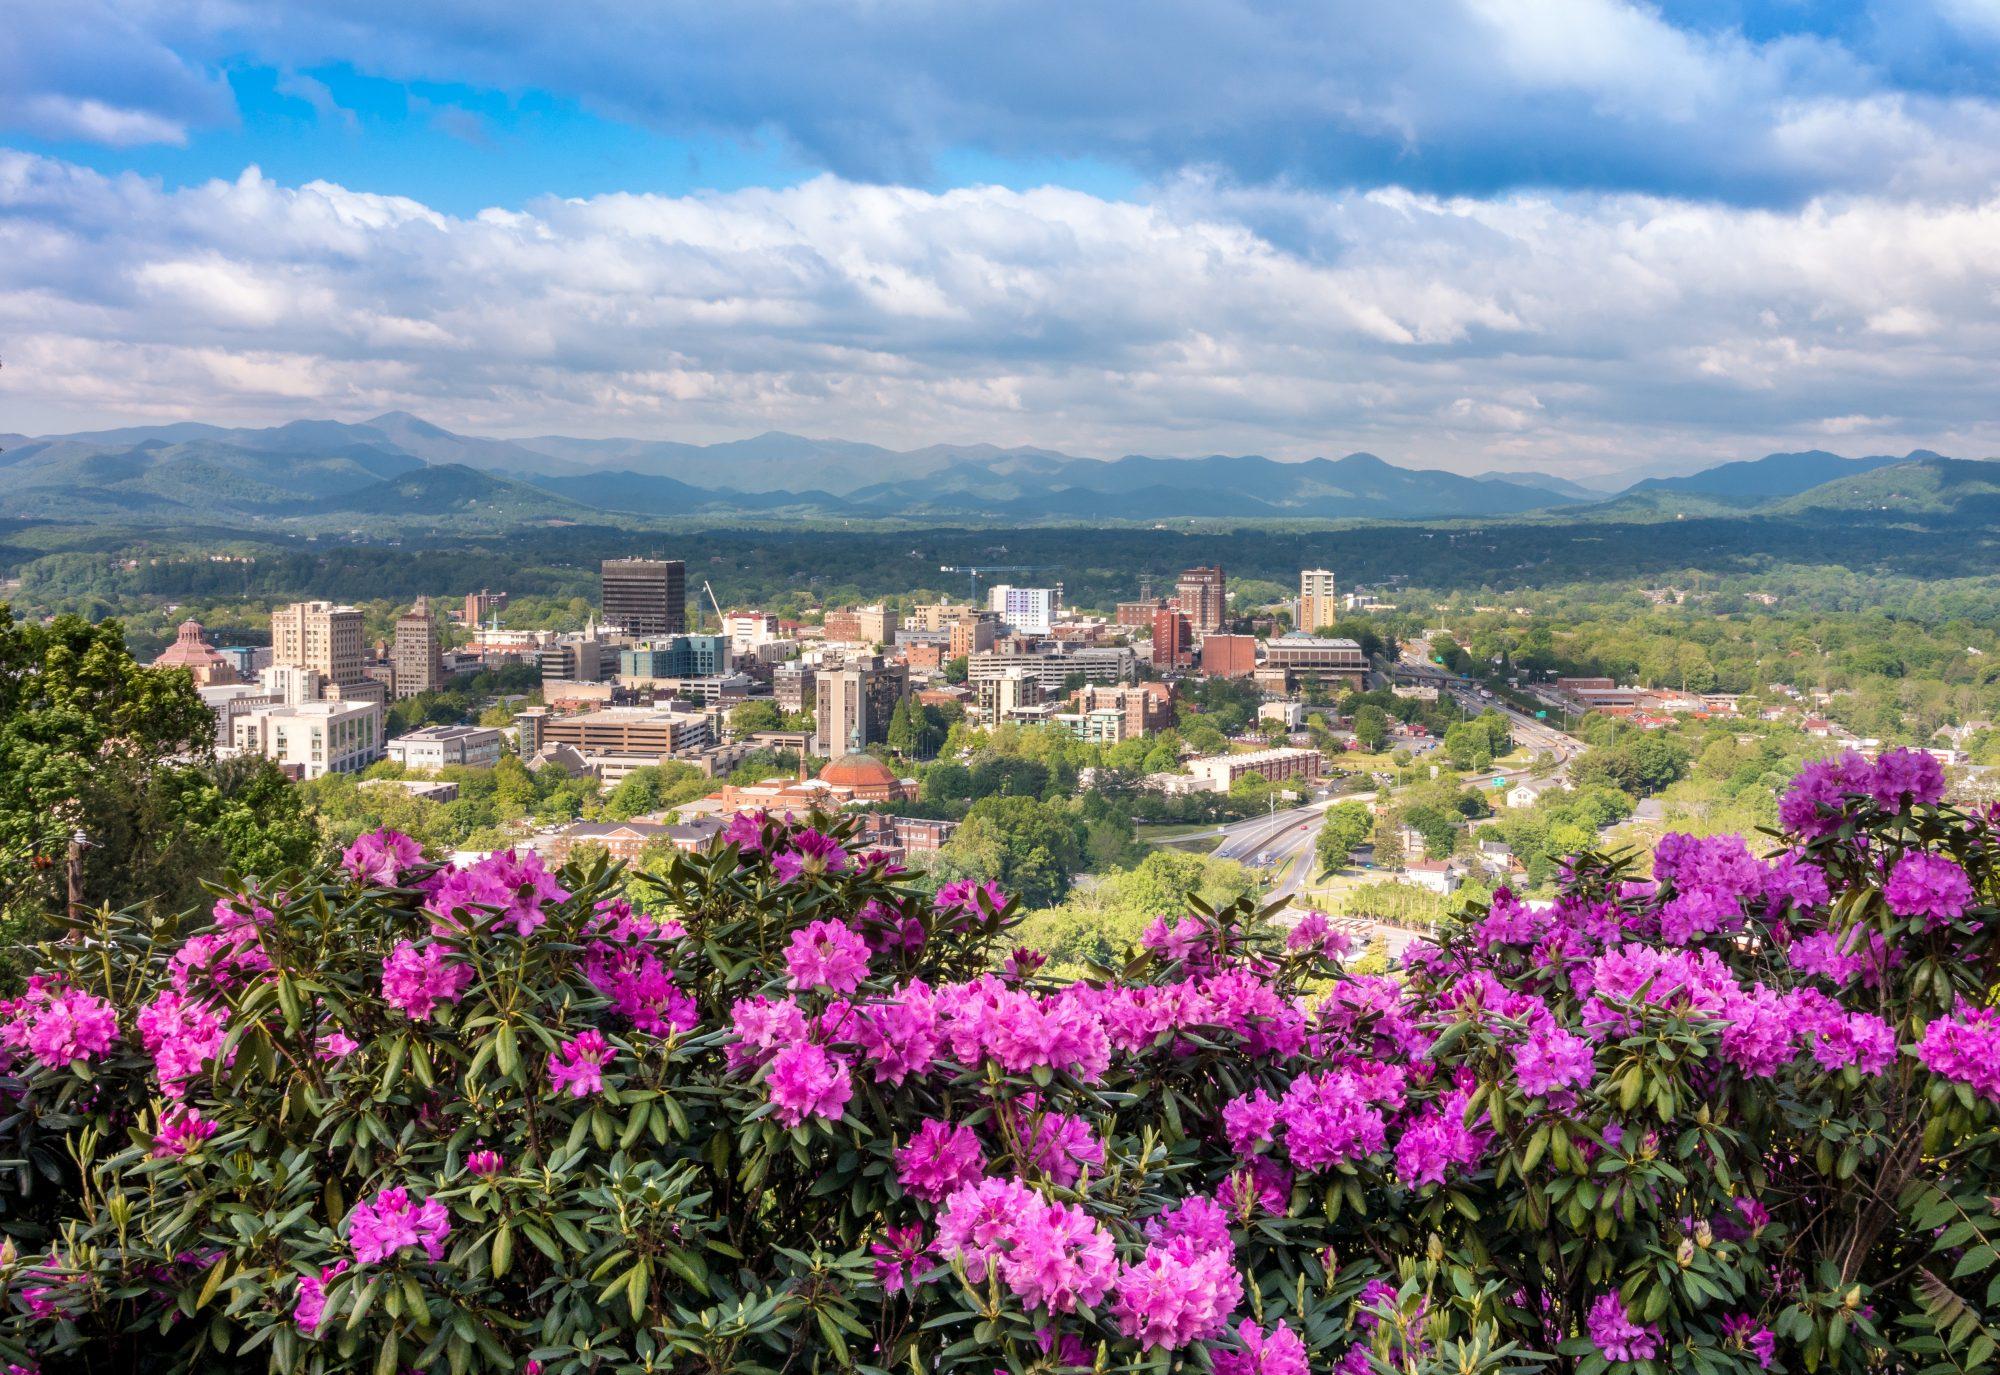 view of downtown asheville, north carolina